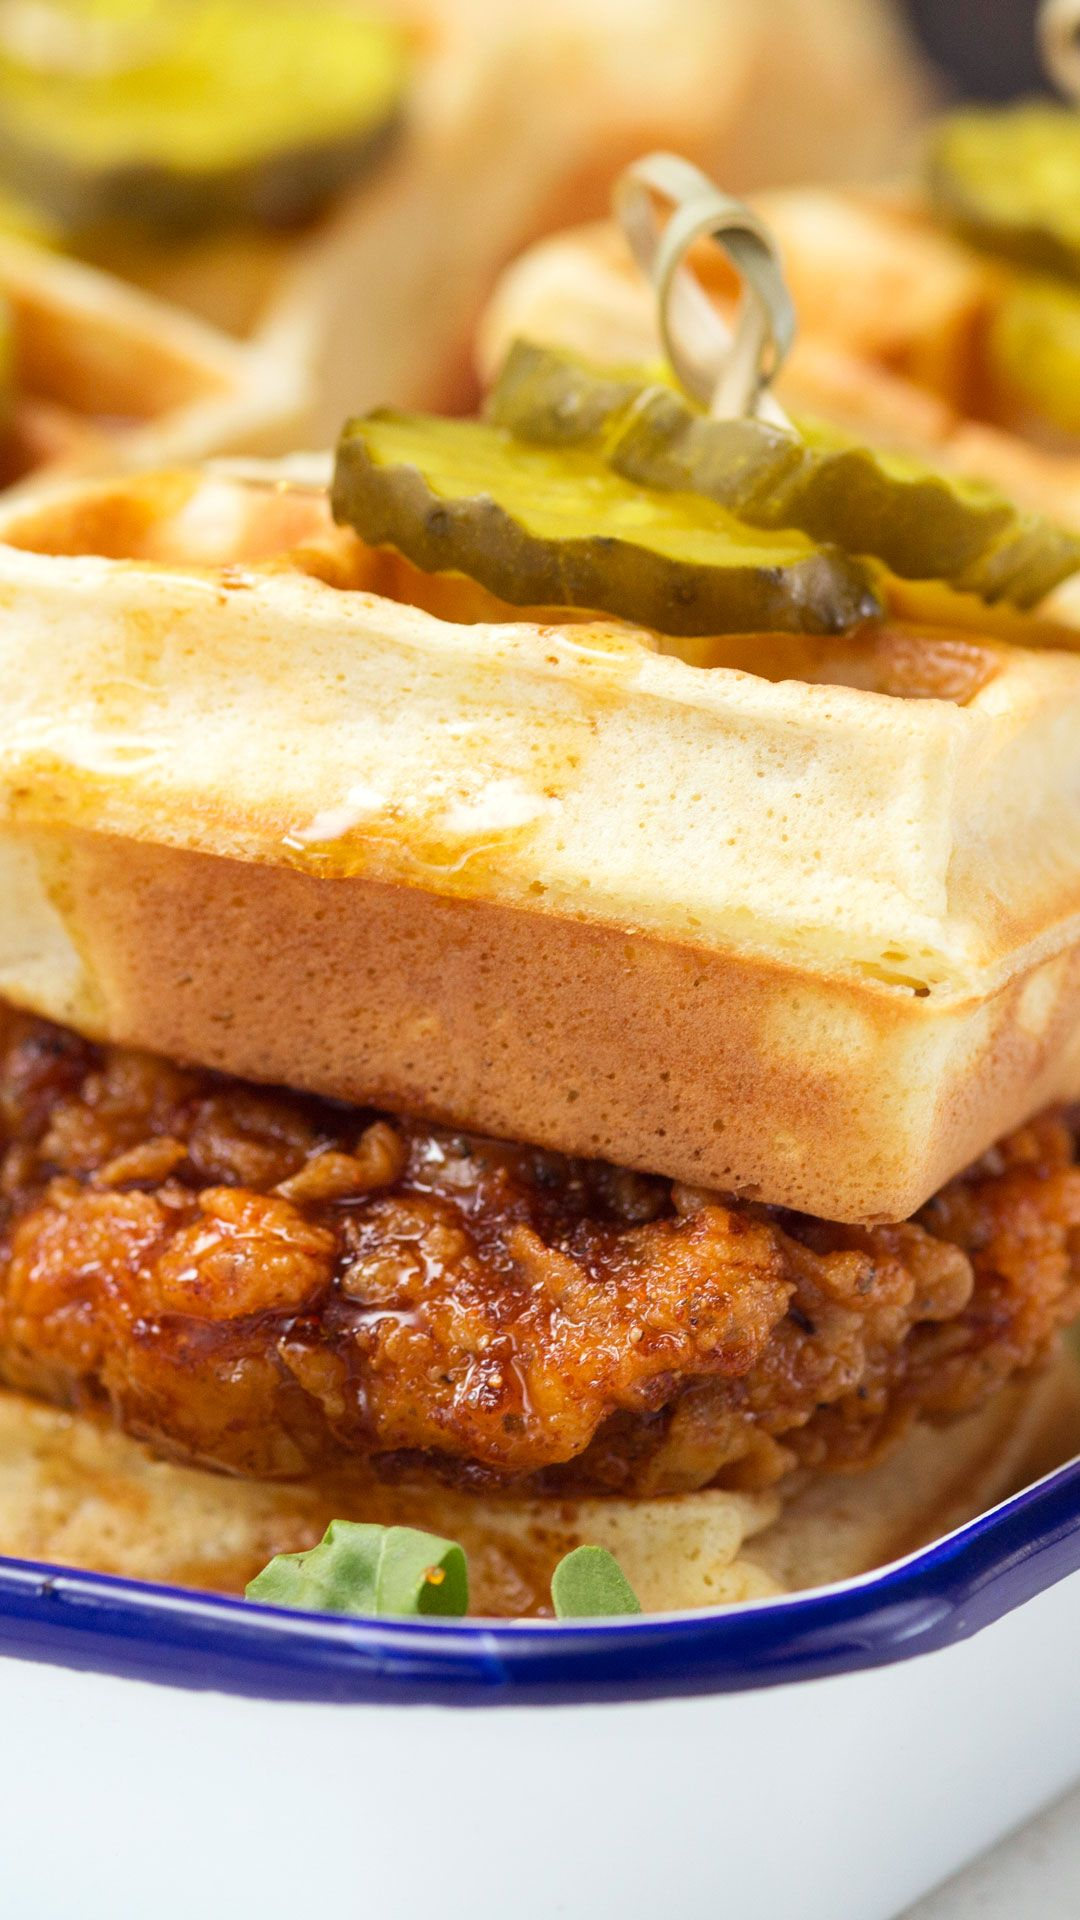 Hot Chicken and Waffle Sliders Give your chicken and waffles a kick in the mouth with the addition of cayenne pepper and hot sauce to the mix.